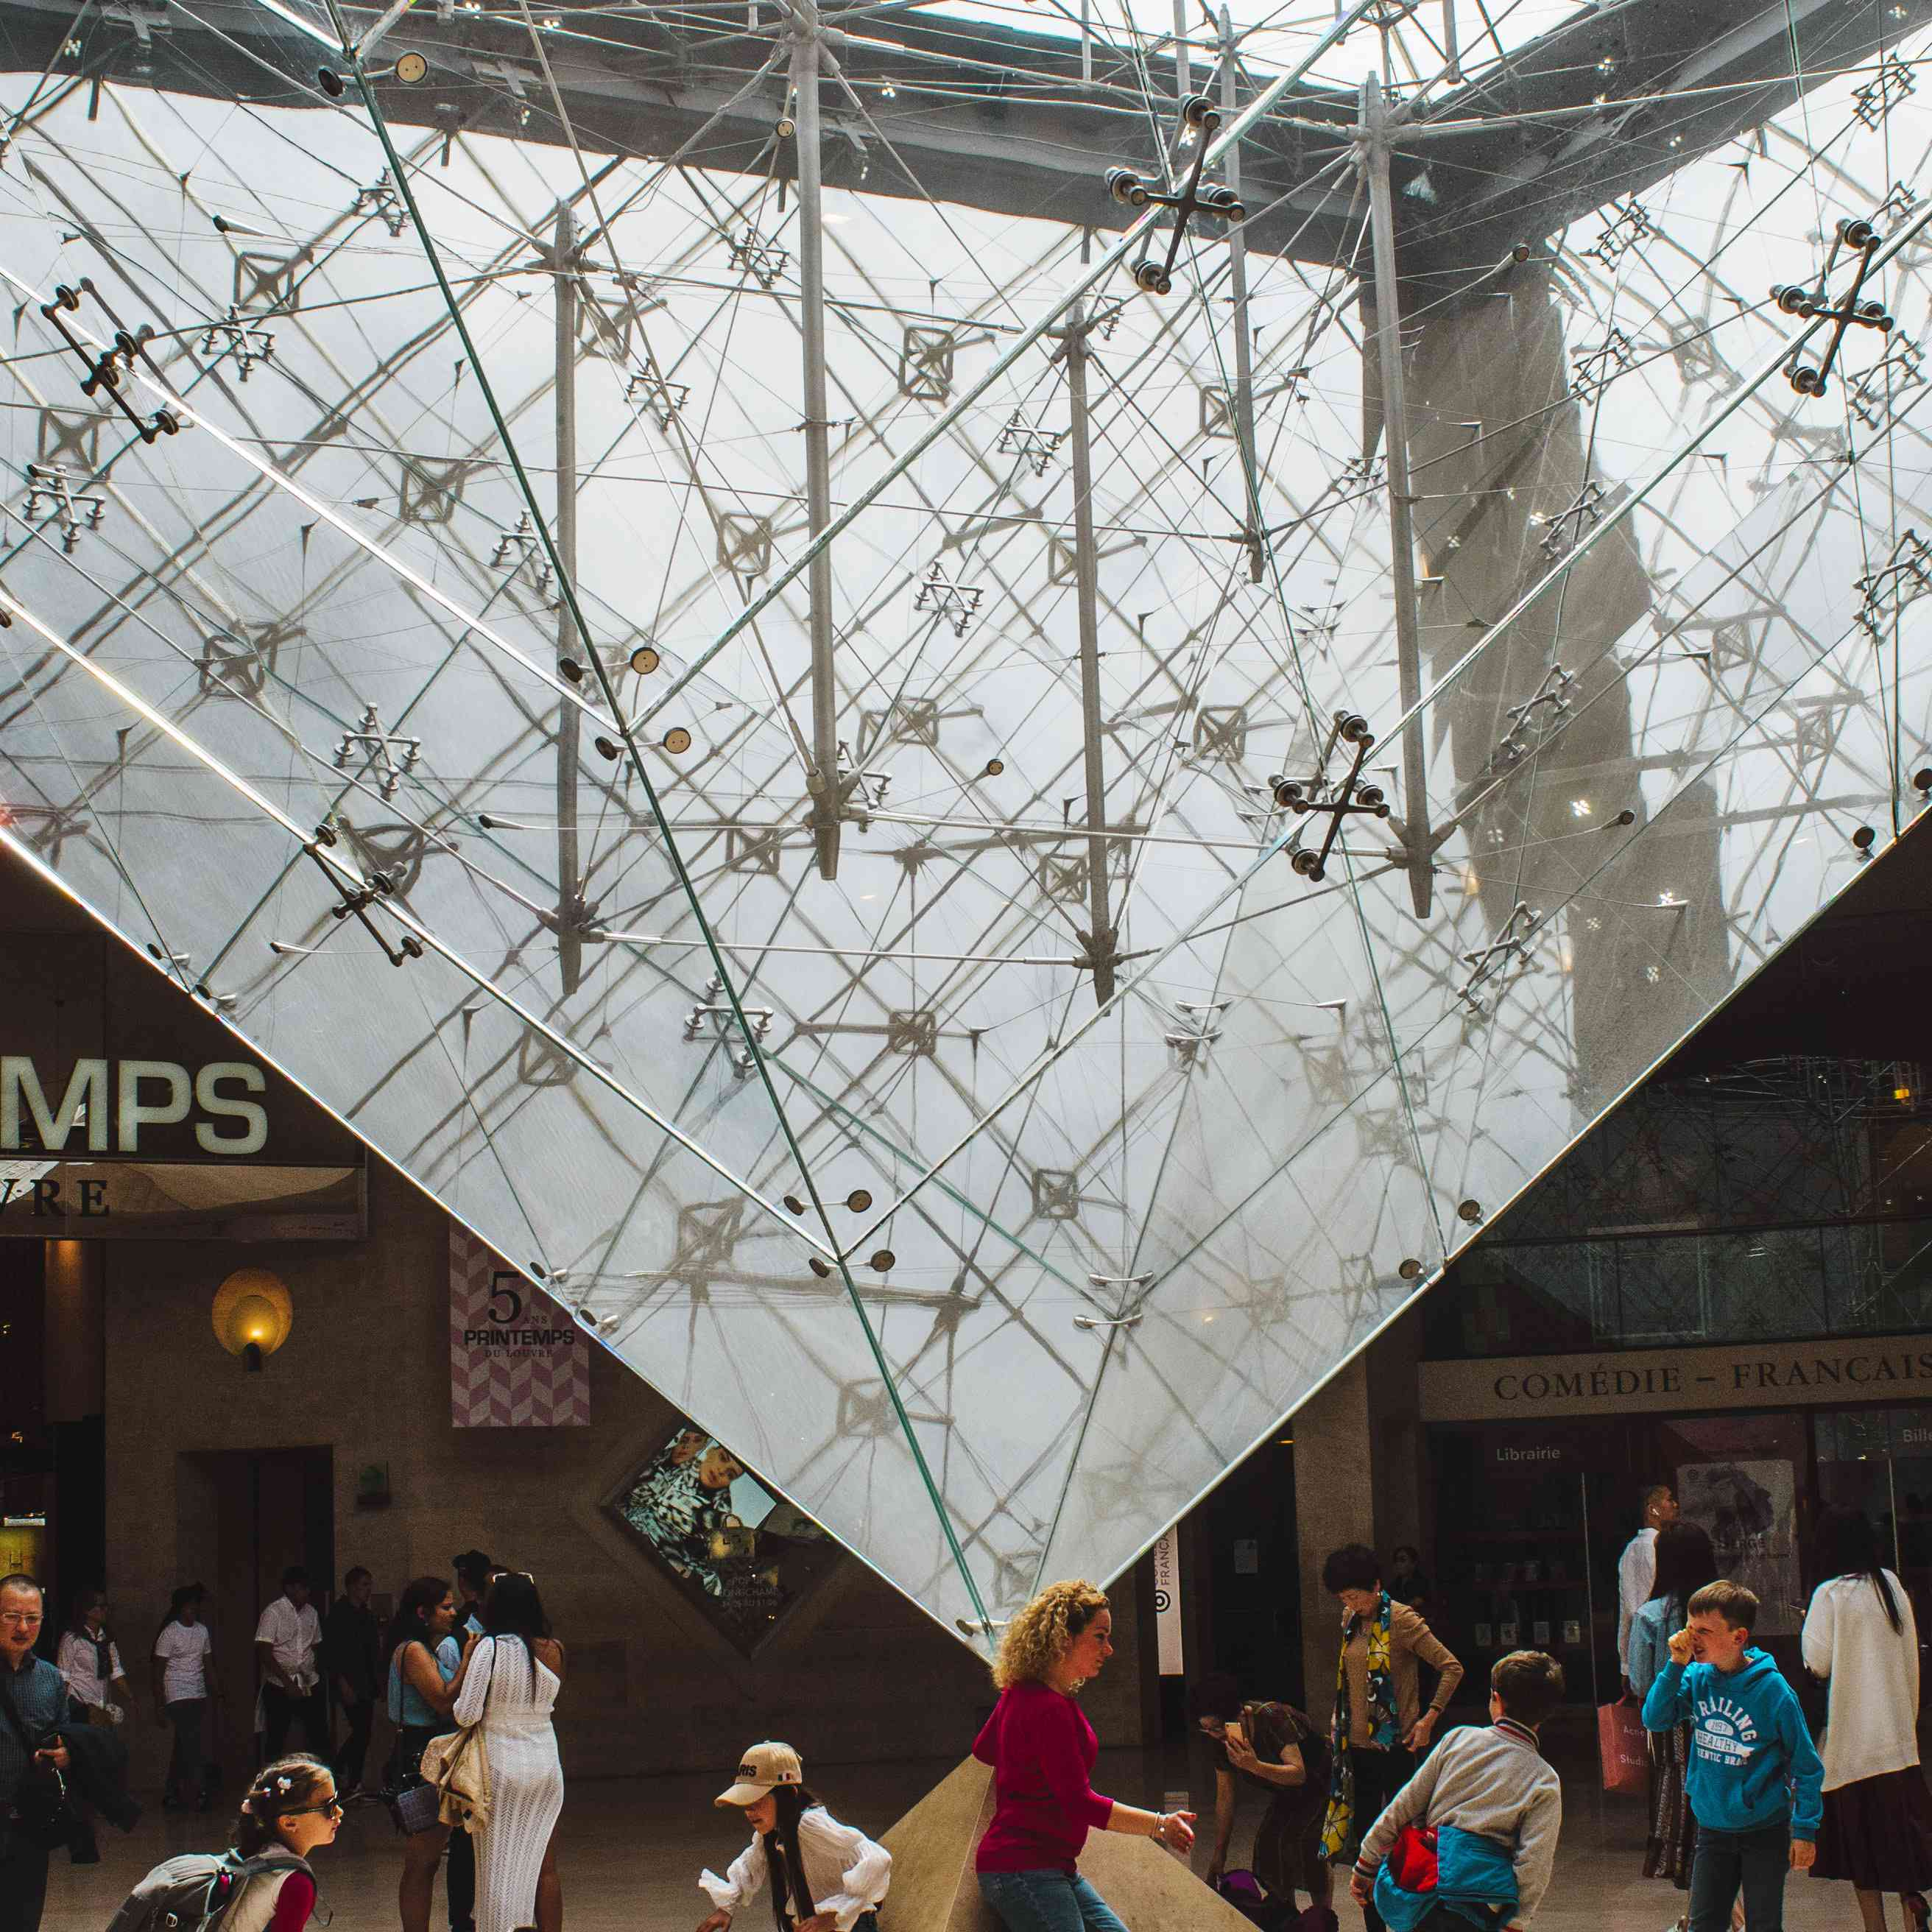 People taking photos at the bottom of the Louvre's glass pyramid